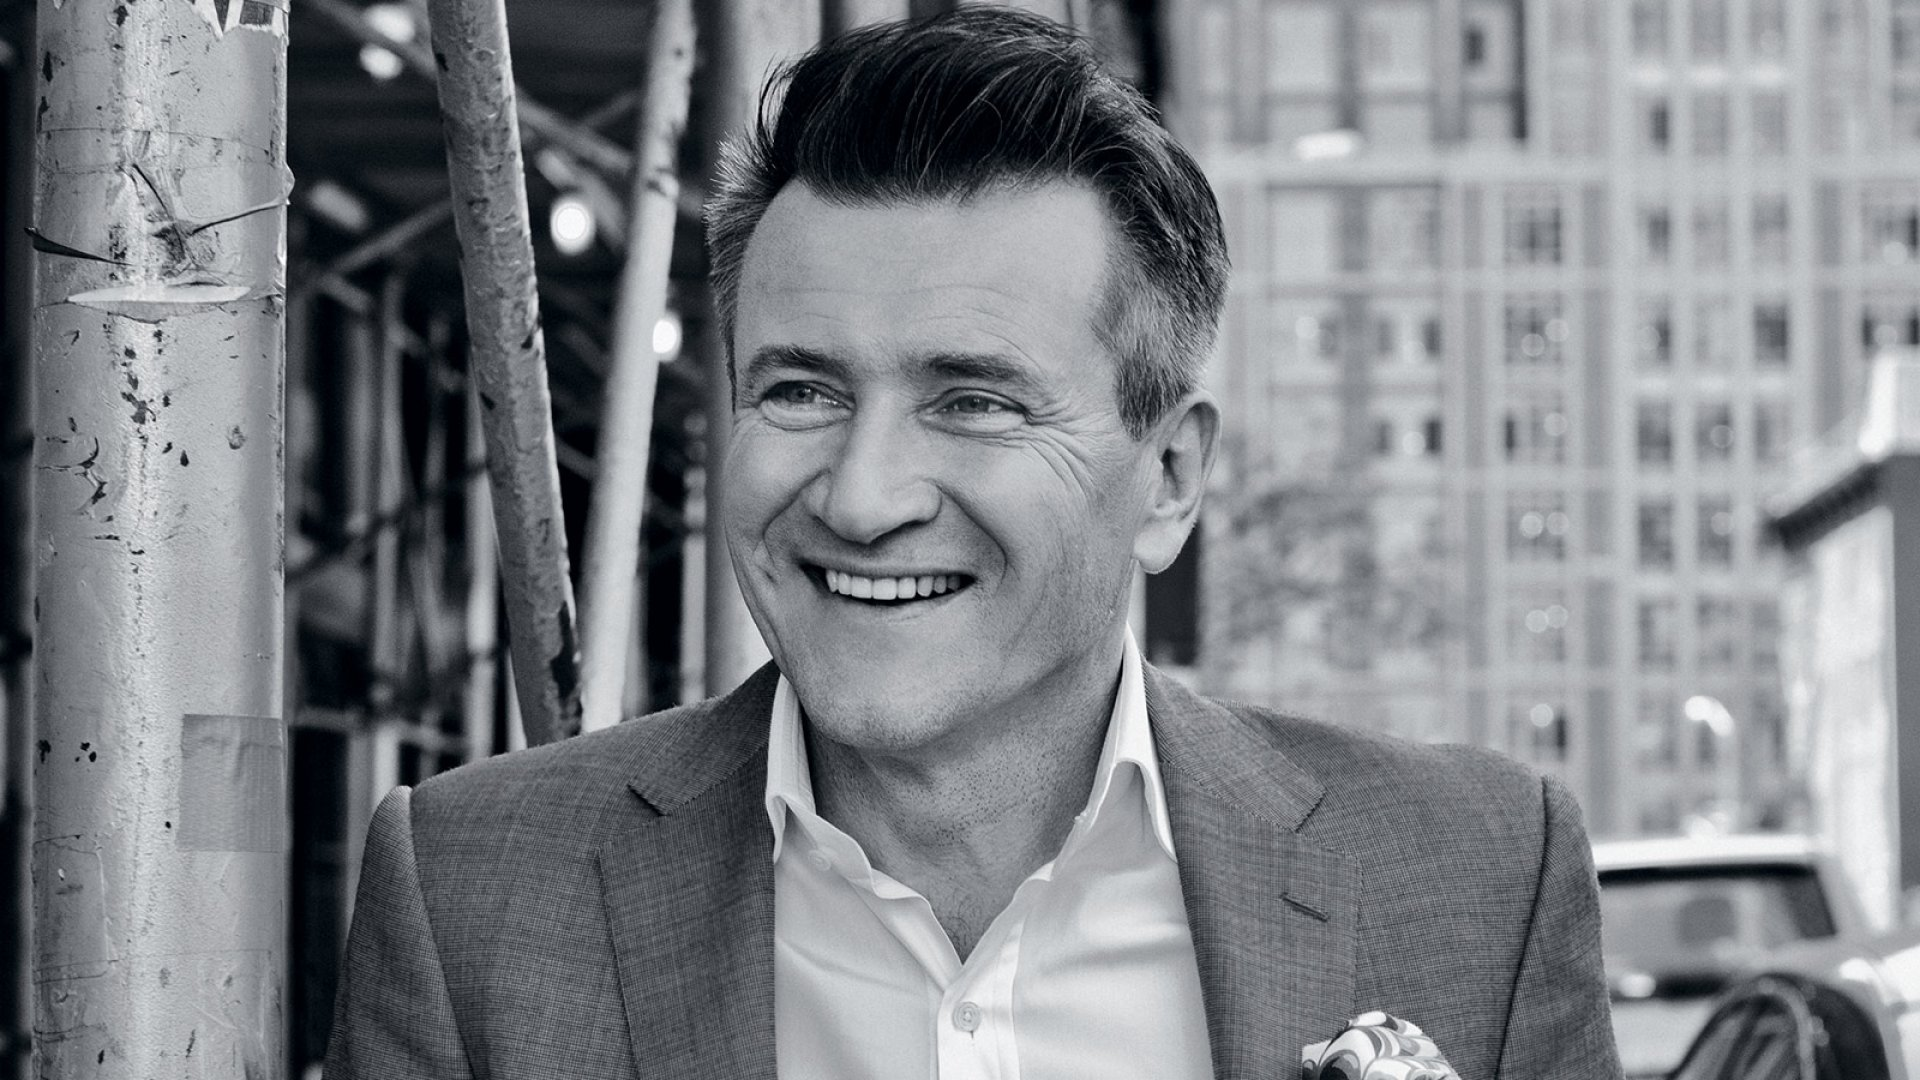 Robert Herjavec says he's learned much about being an entrepreneur from his time on <i>Shark Tank</i>, but his immigrant background has taught him his most important lesson: Treat others with respect, regardless of their economic status.